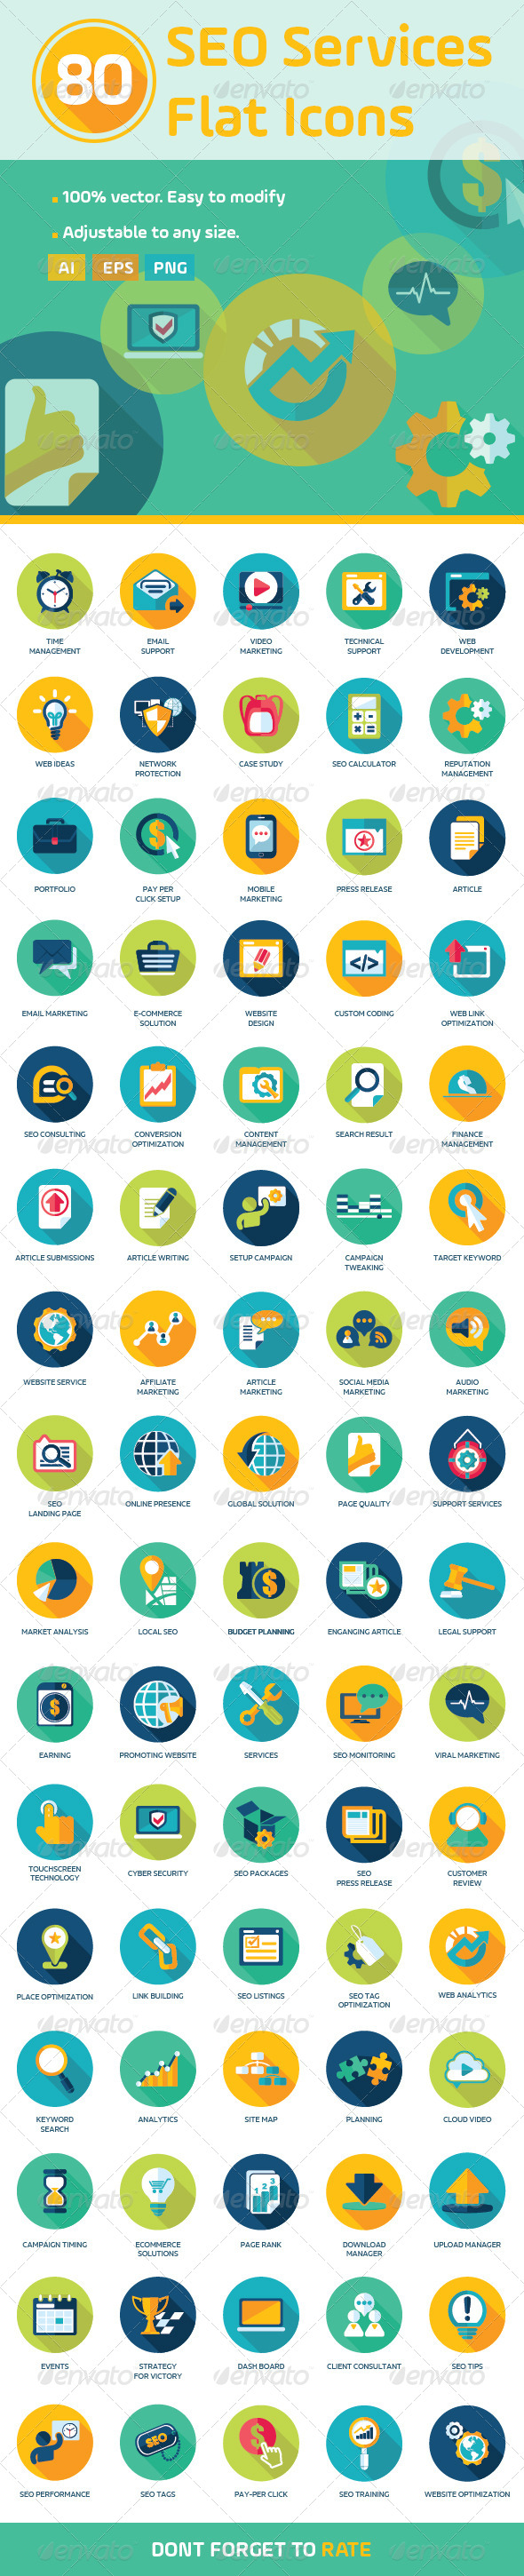 GraphicRiver 80 Flat SEO Services Icons 8567874